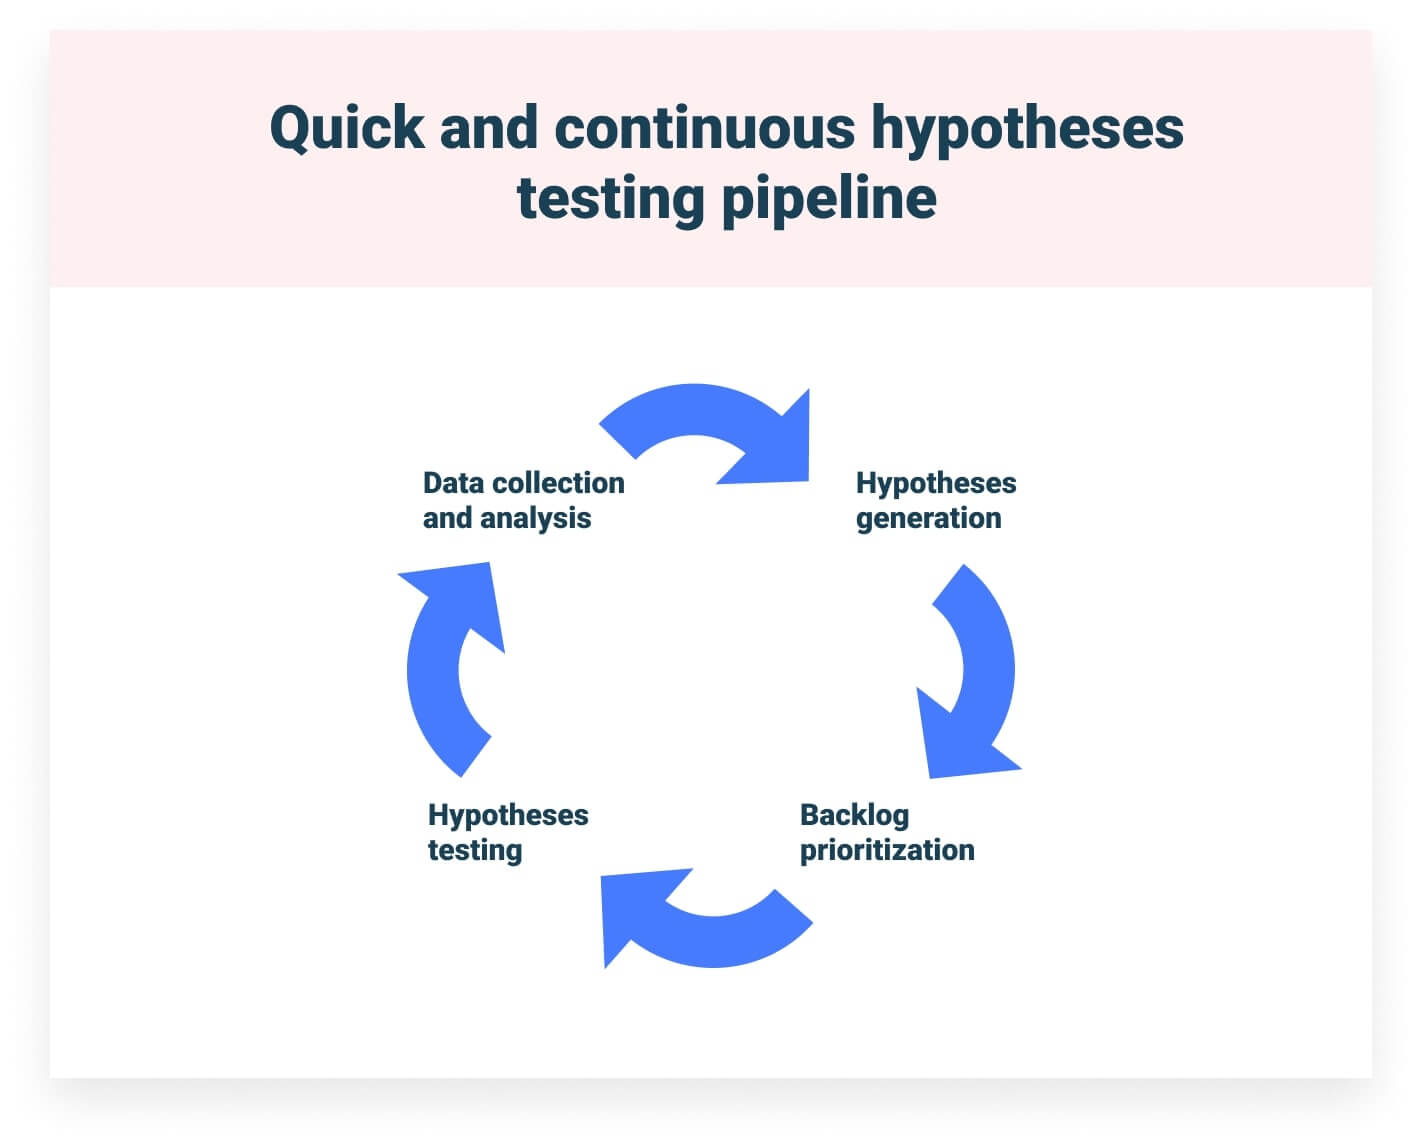 hypotheses testing pipeline